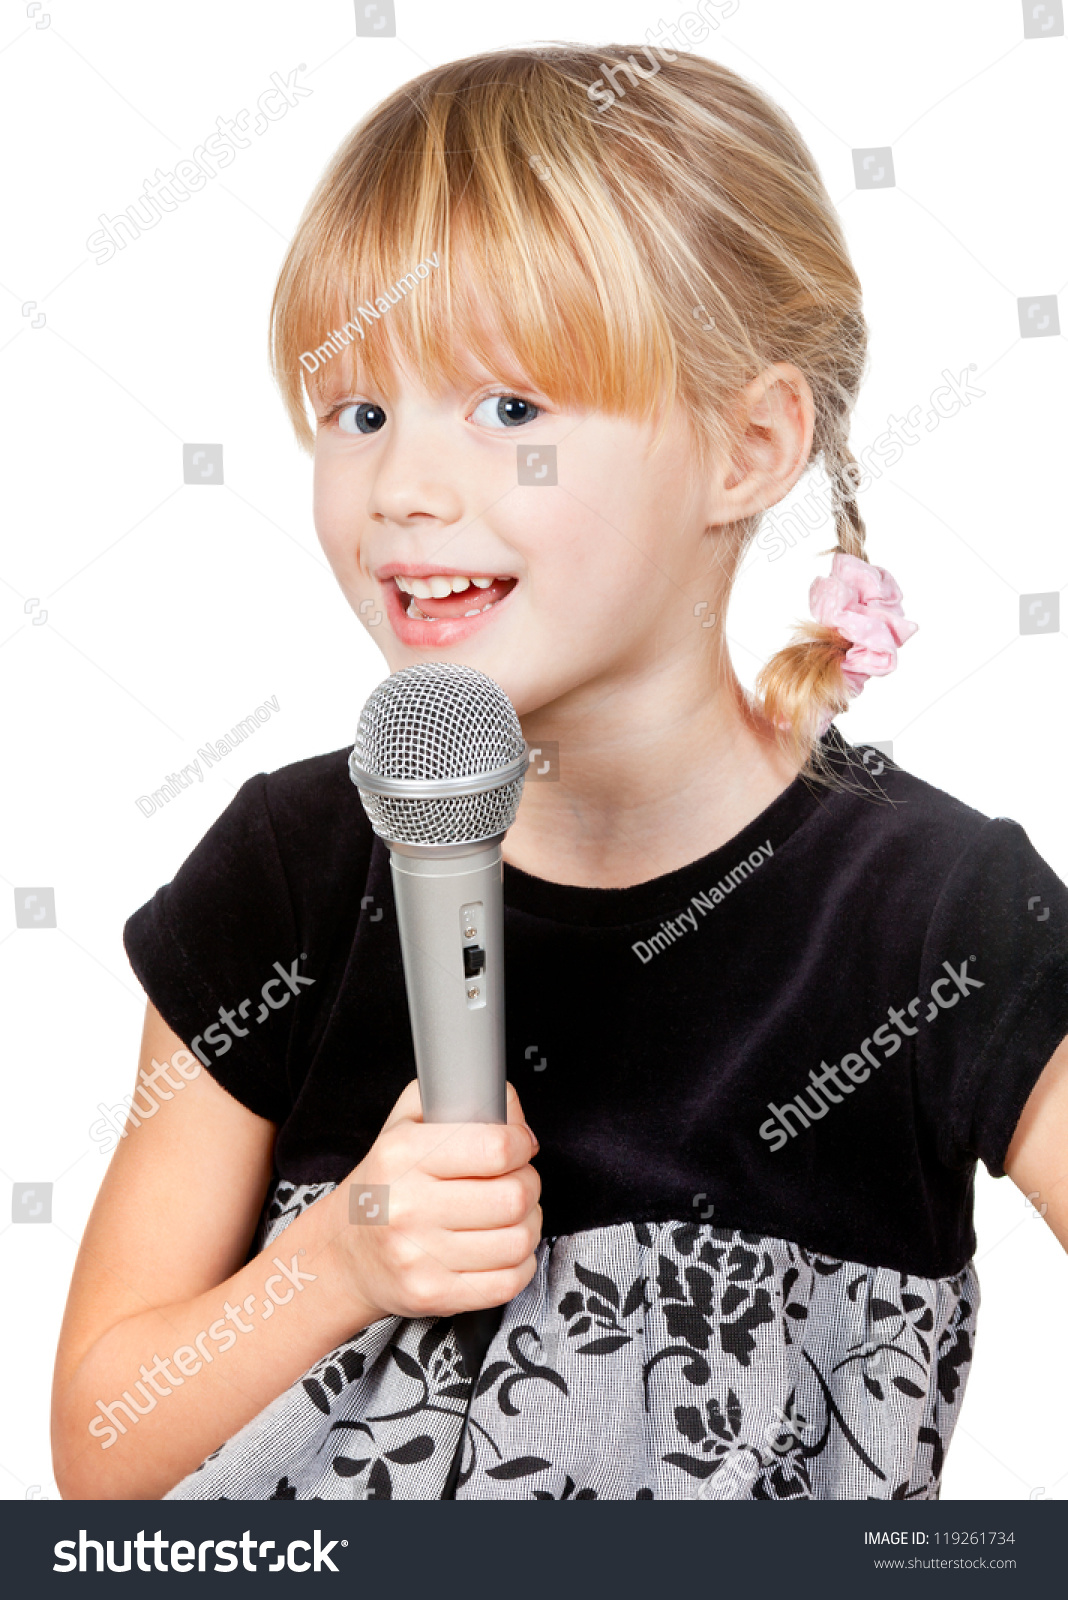 Cute Little Girl Singing Holding Microphone Stock Photo ...